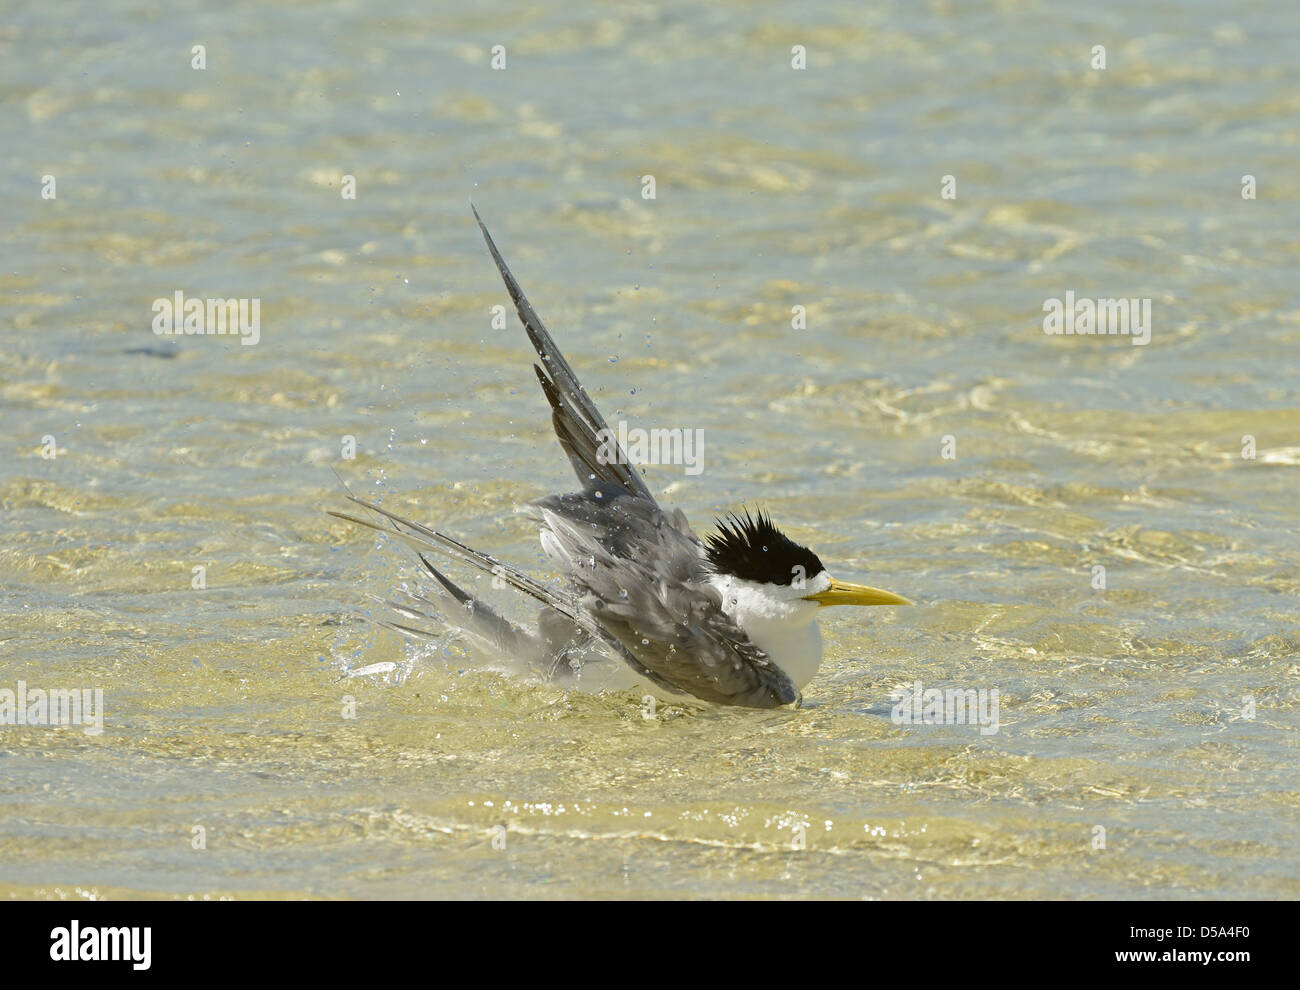 Greater Crested or Swift Tern (Thalasseus bergii) bathing in shallow sea water, Queensland, Australia, November - Stock Image